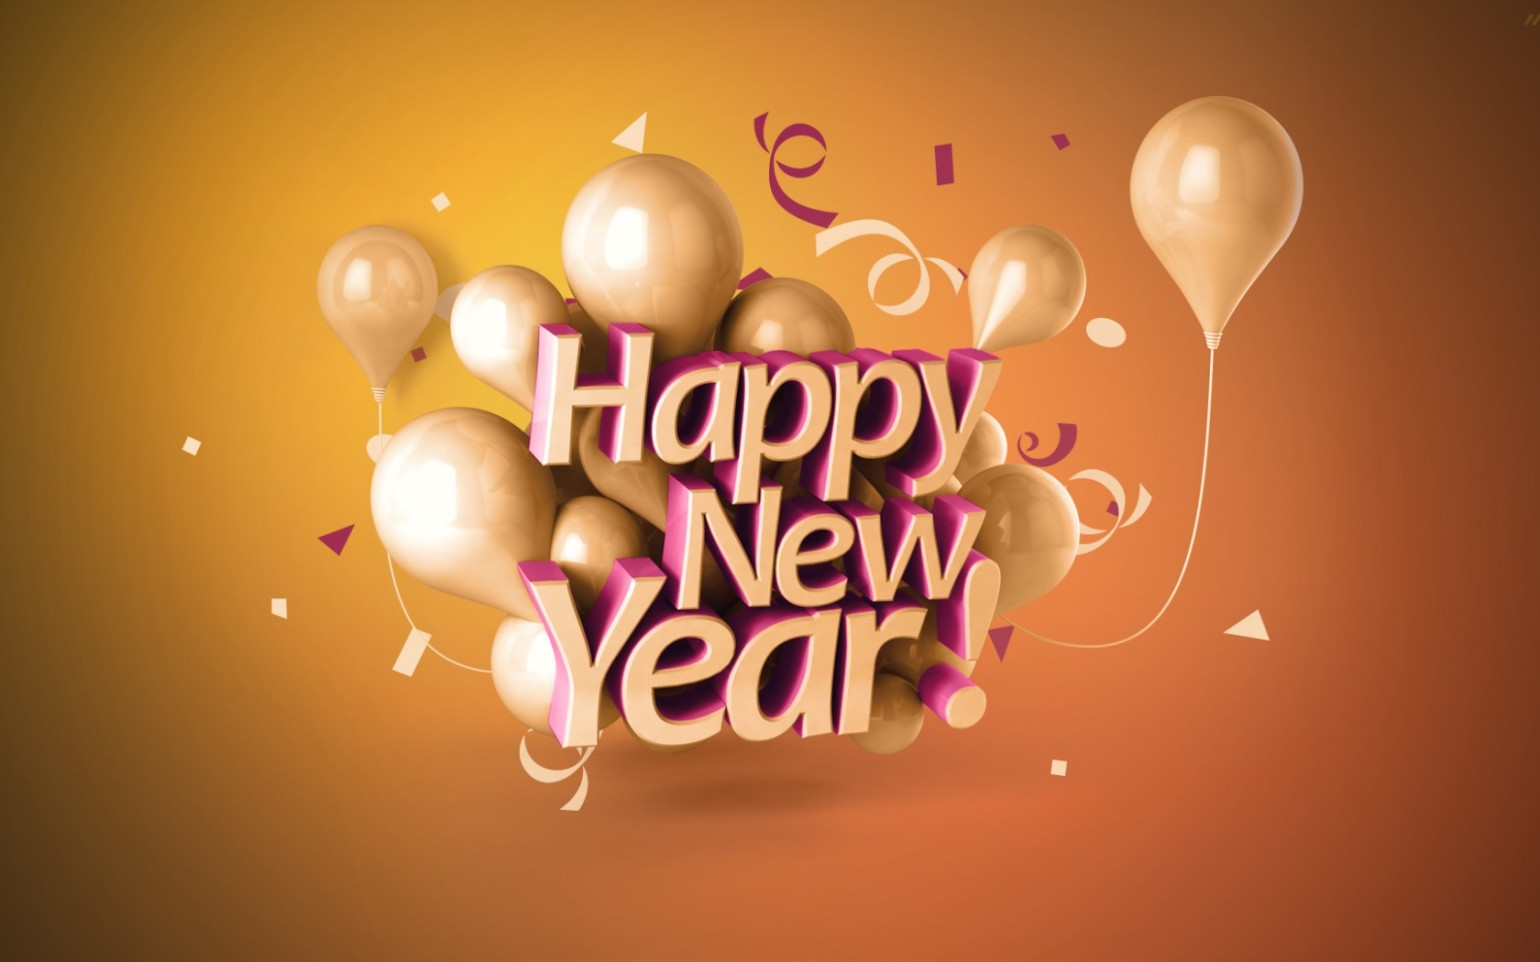 happy-new-year-images-1